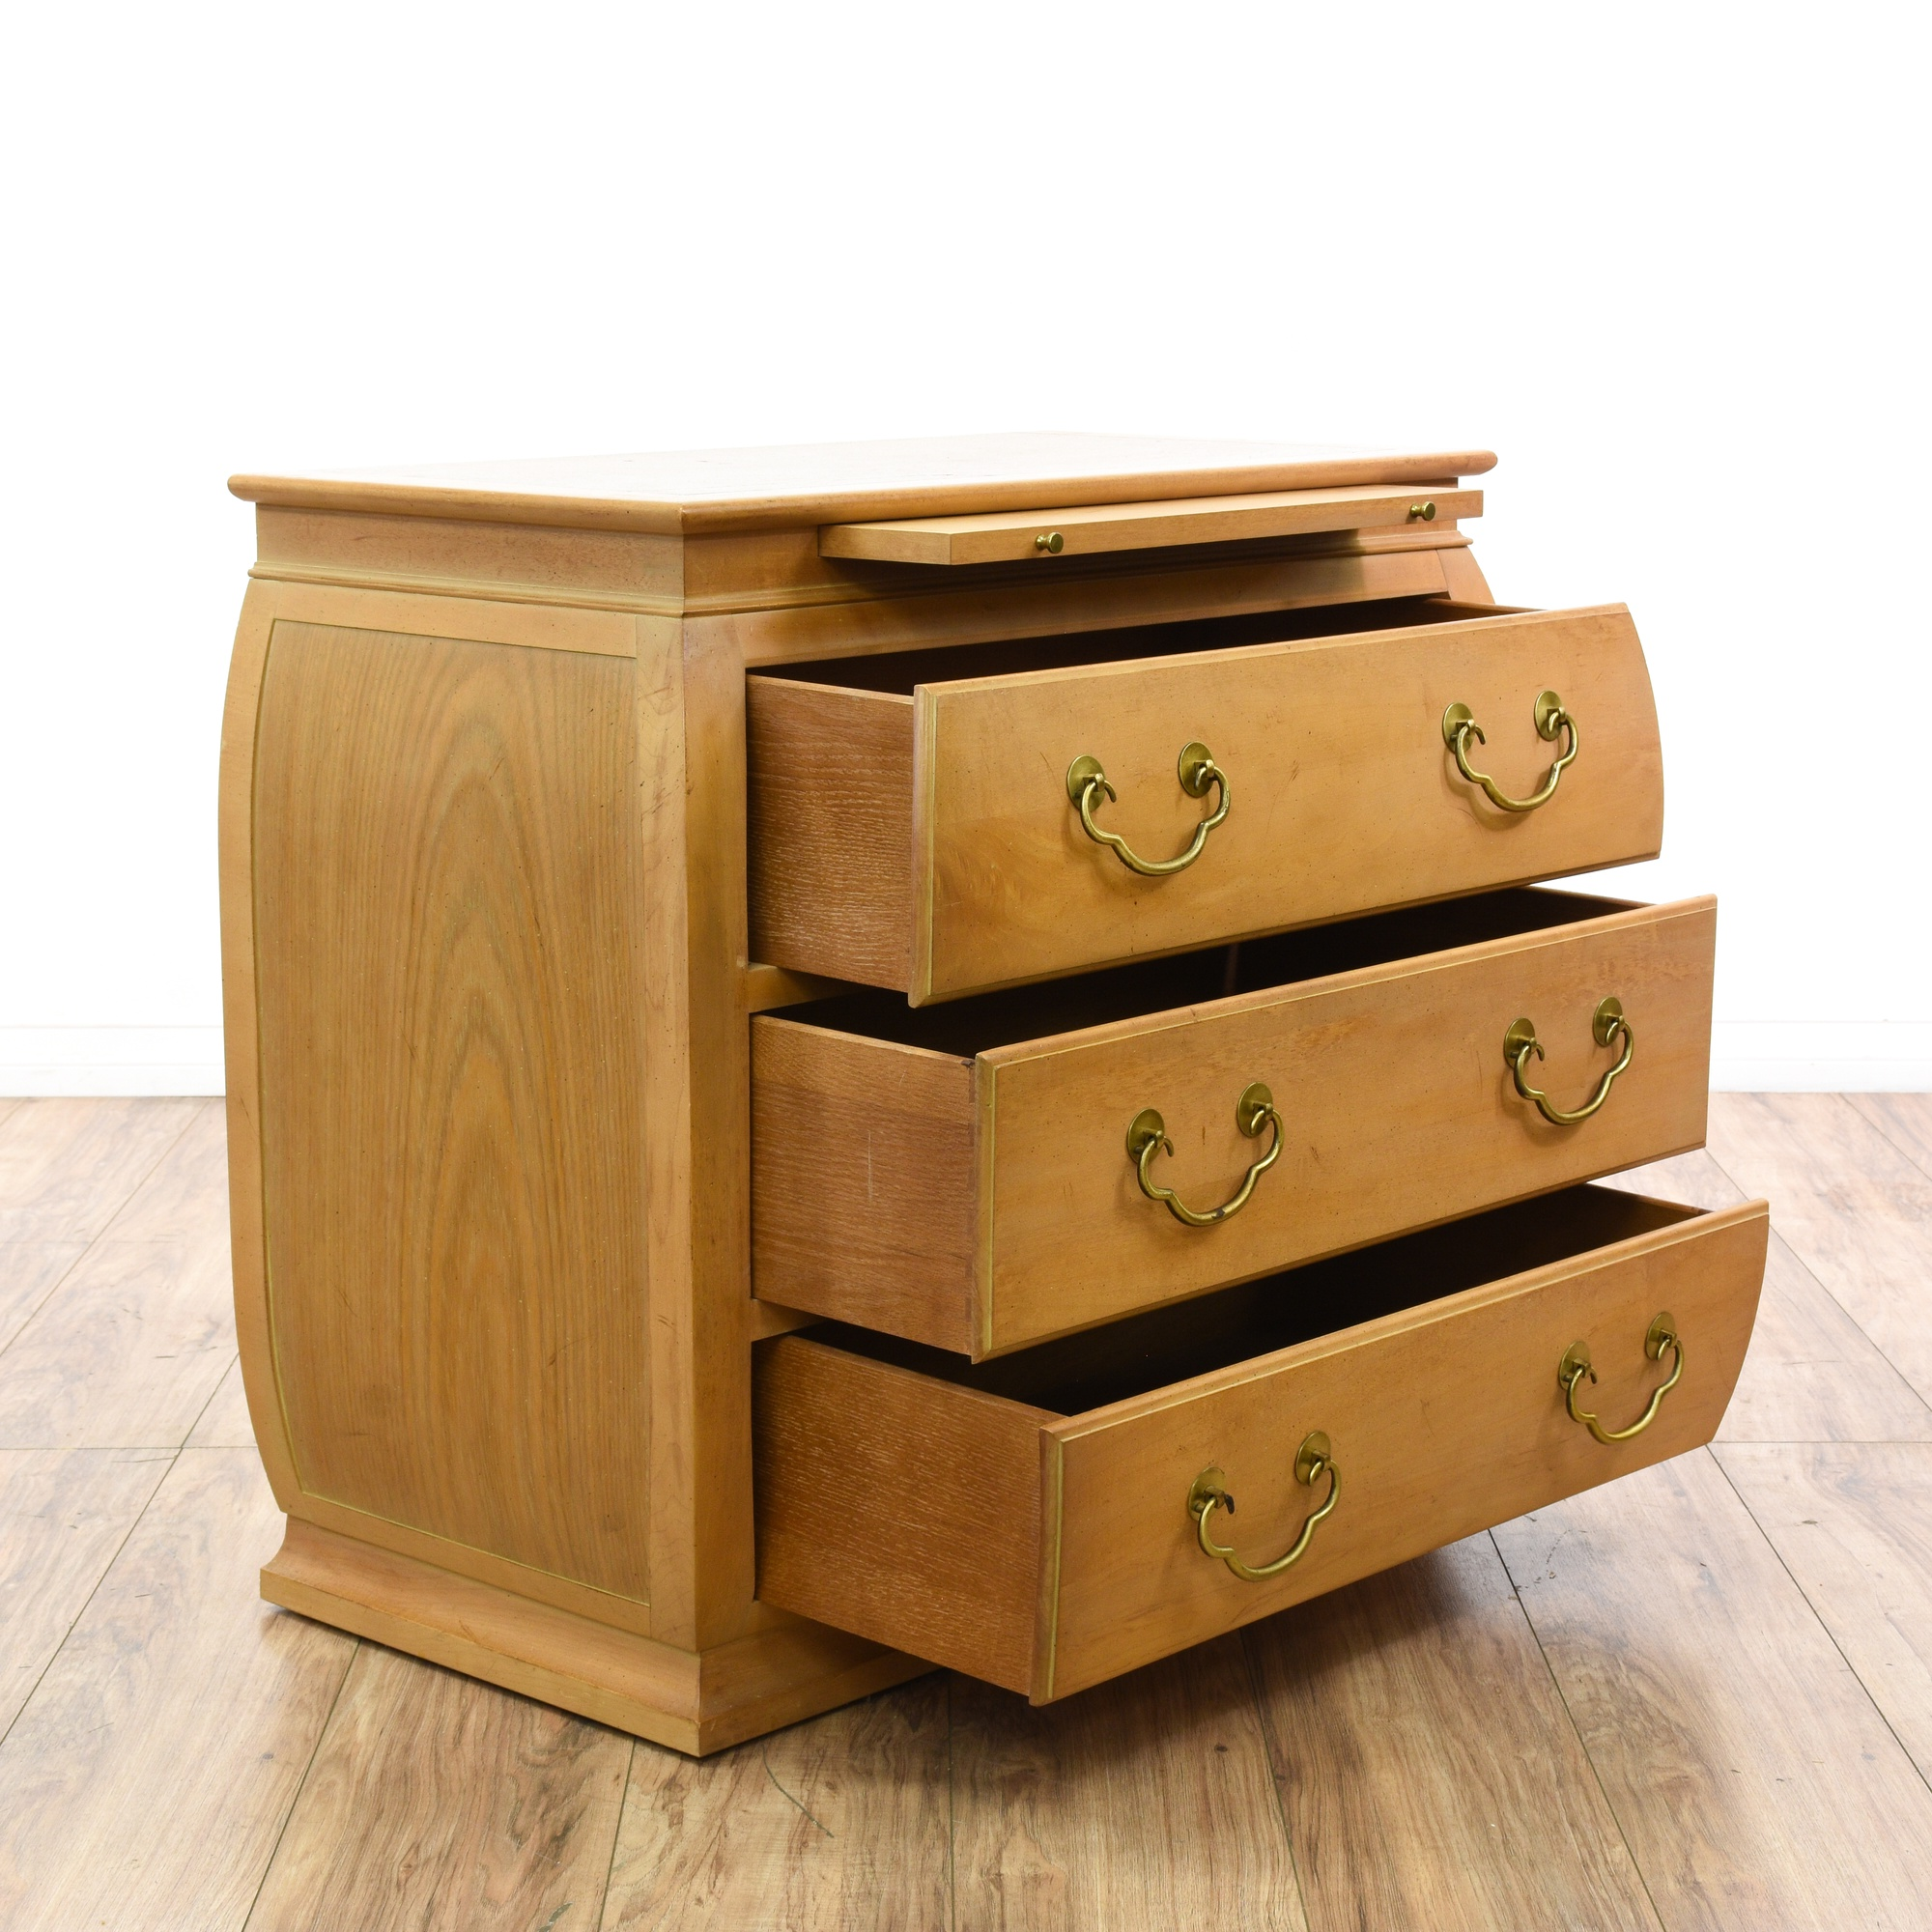 Quot Hekman Quot Light Wood Chest Of Drawers Loveseat Vintage